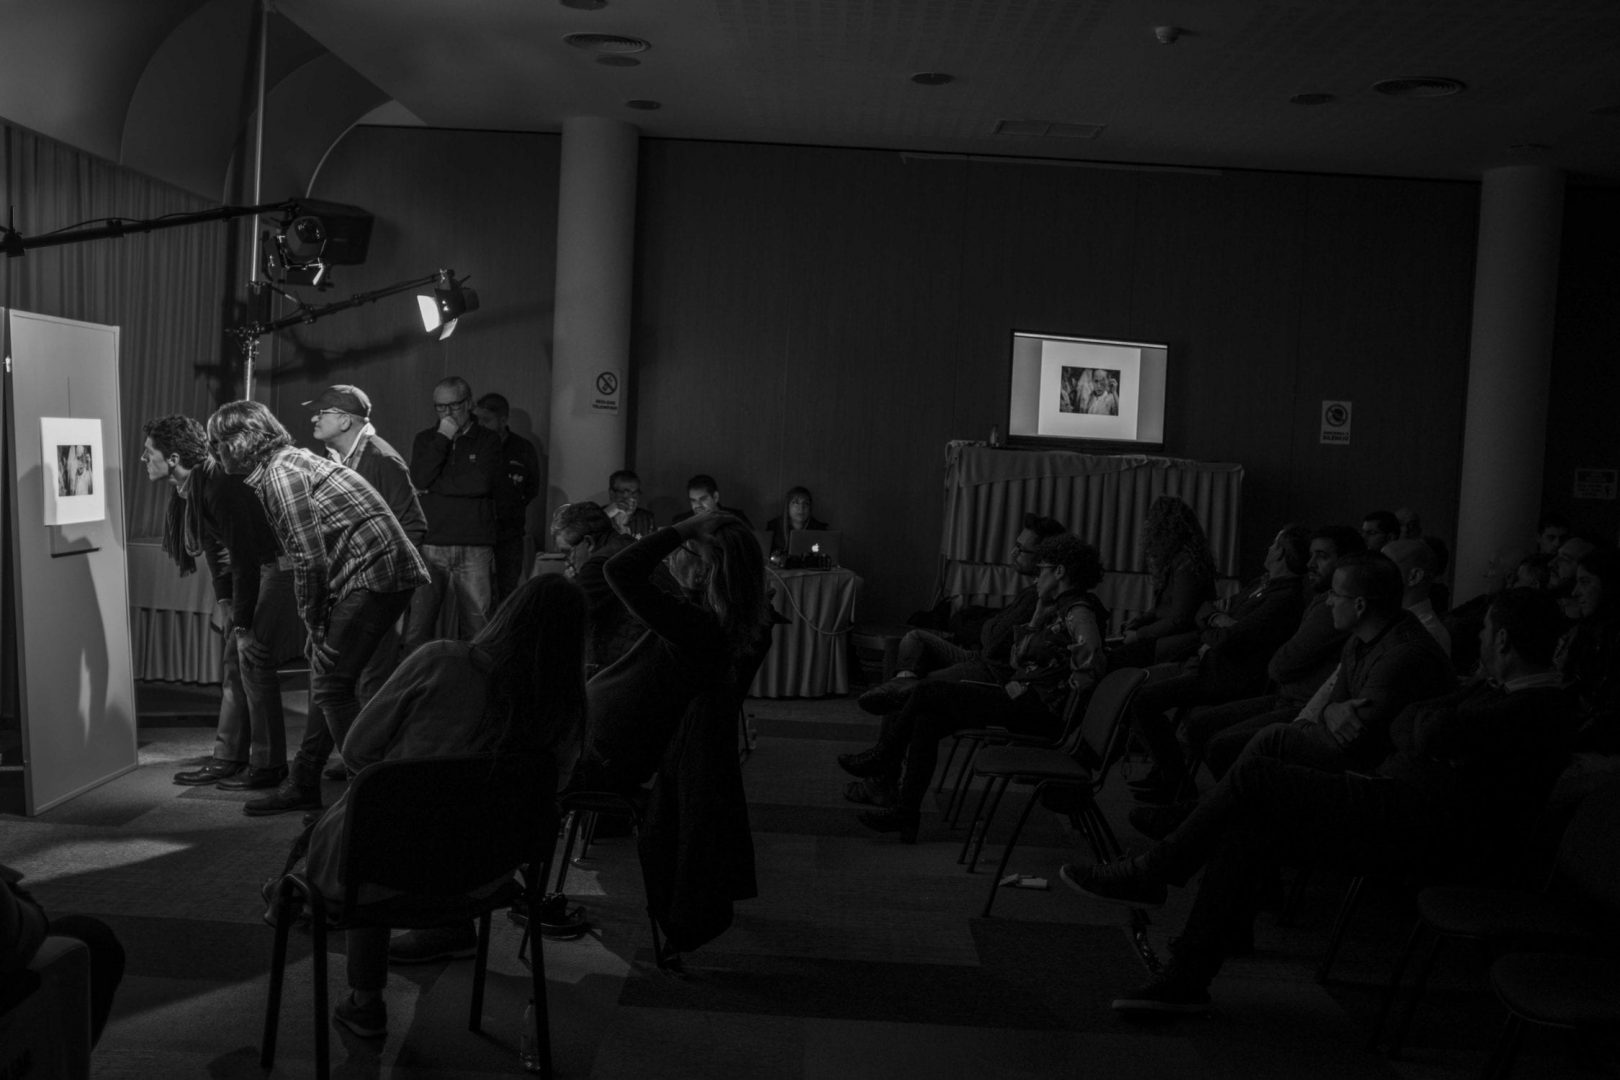 The event was open to the public, so anyone could come and learn from the opinions and verdicts of the jury panel about the submitted photographs.